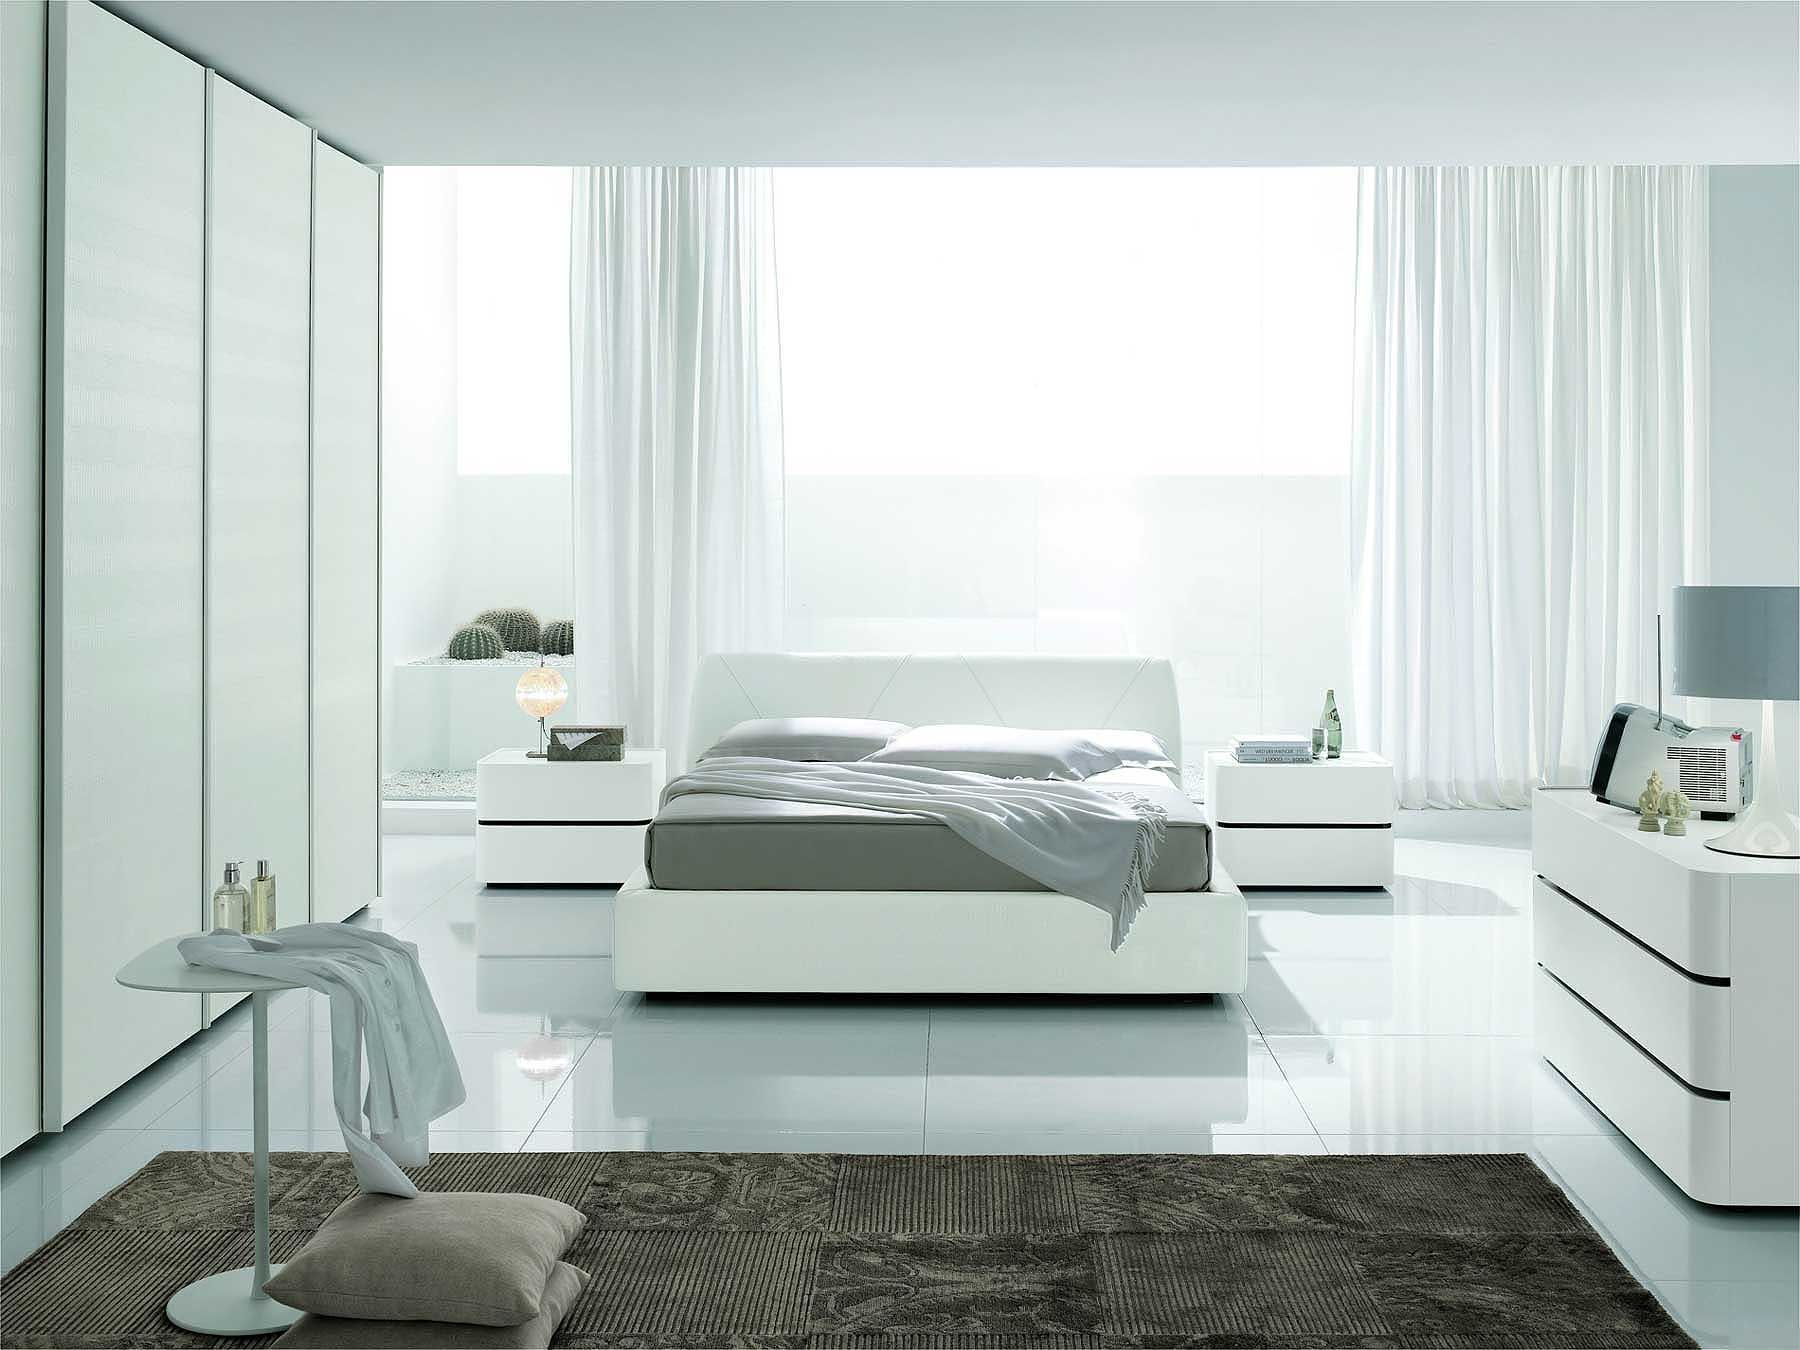 Modern Bedroom Interiors Contemporary Interior Design Pictures Photos Furniture